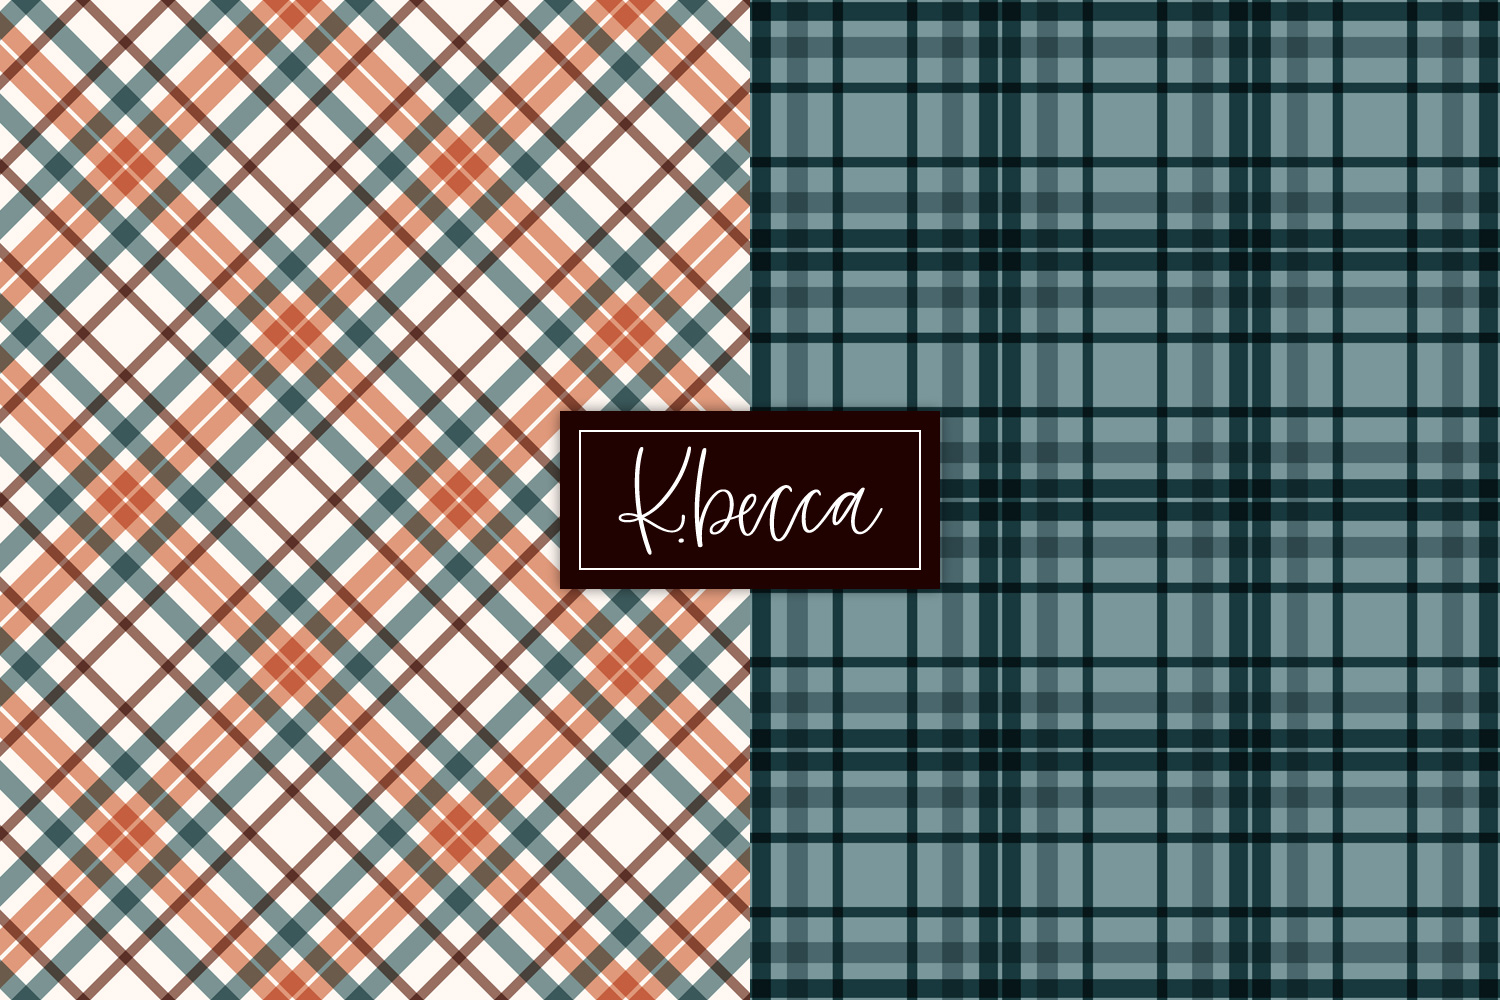 Autumn Fall Plaid Background Patterns Seamless example image 2